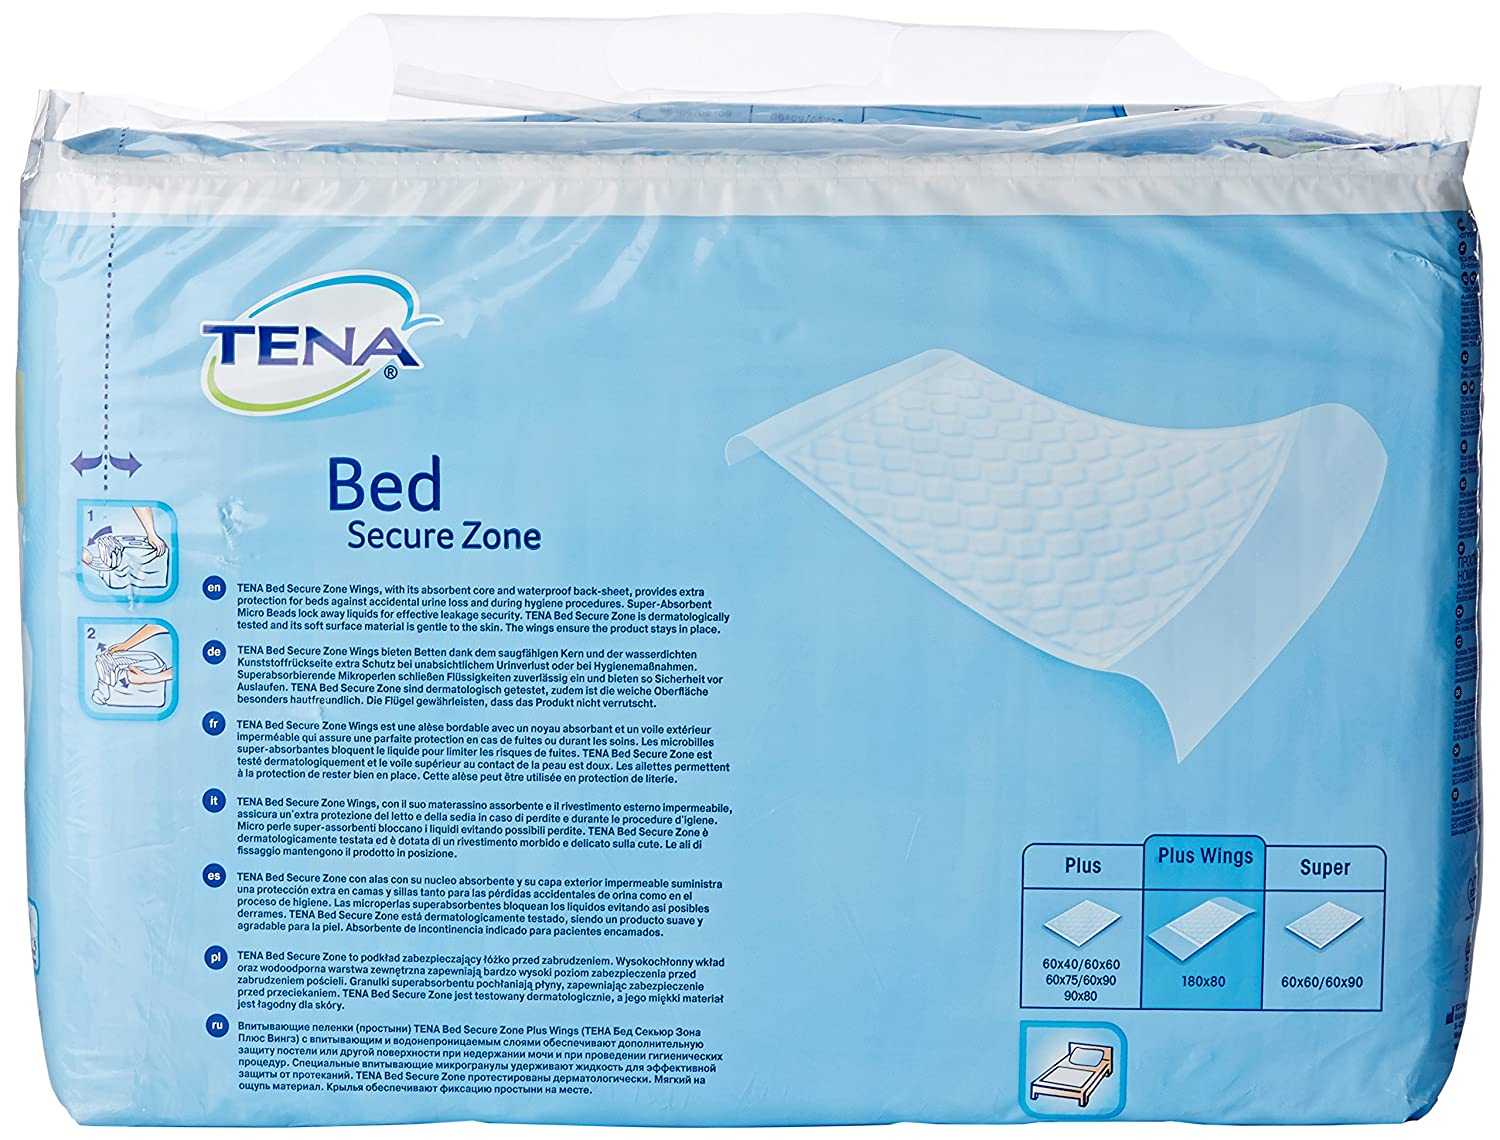 tena bed plus wings 80 x 180 cm pack of 20 sheets amazon co uk